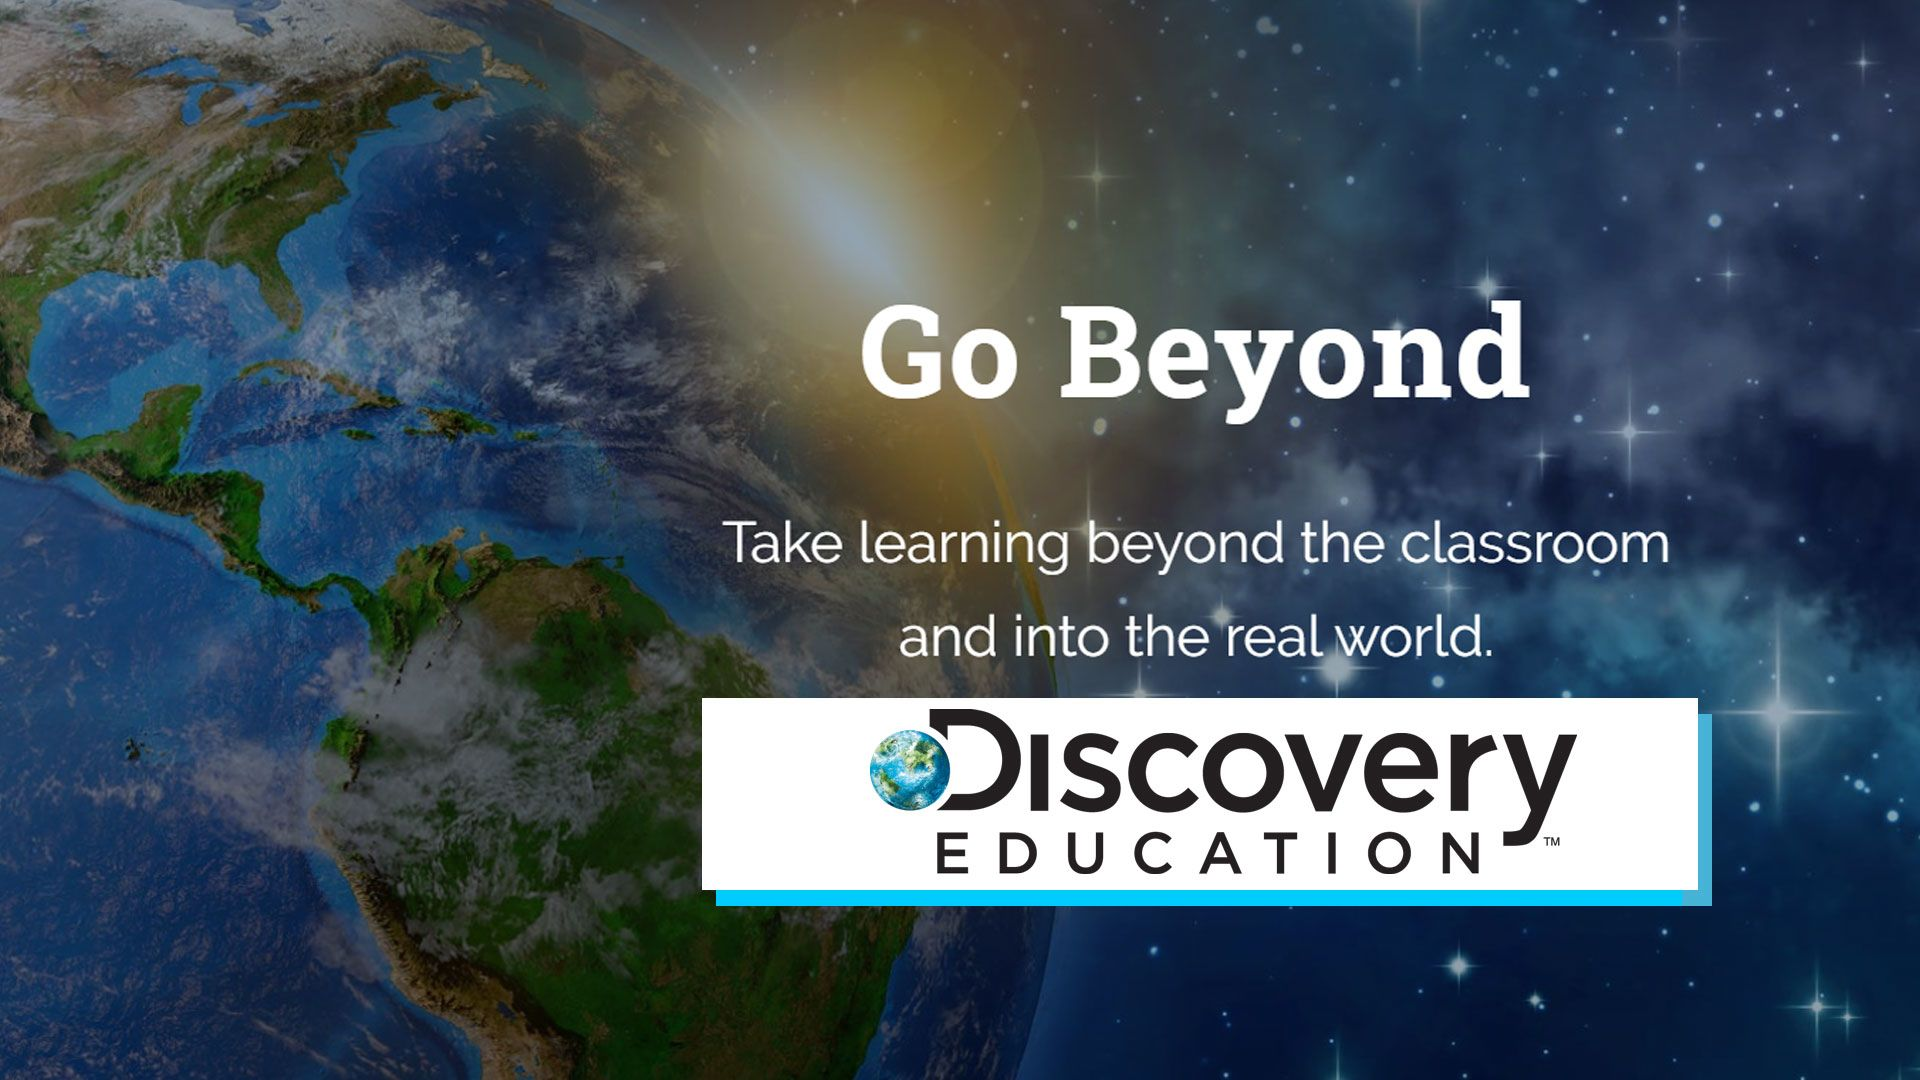 Discovery Education Resources